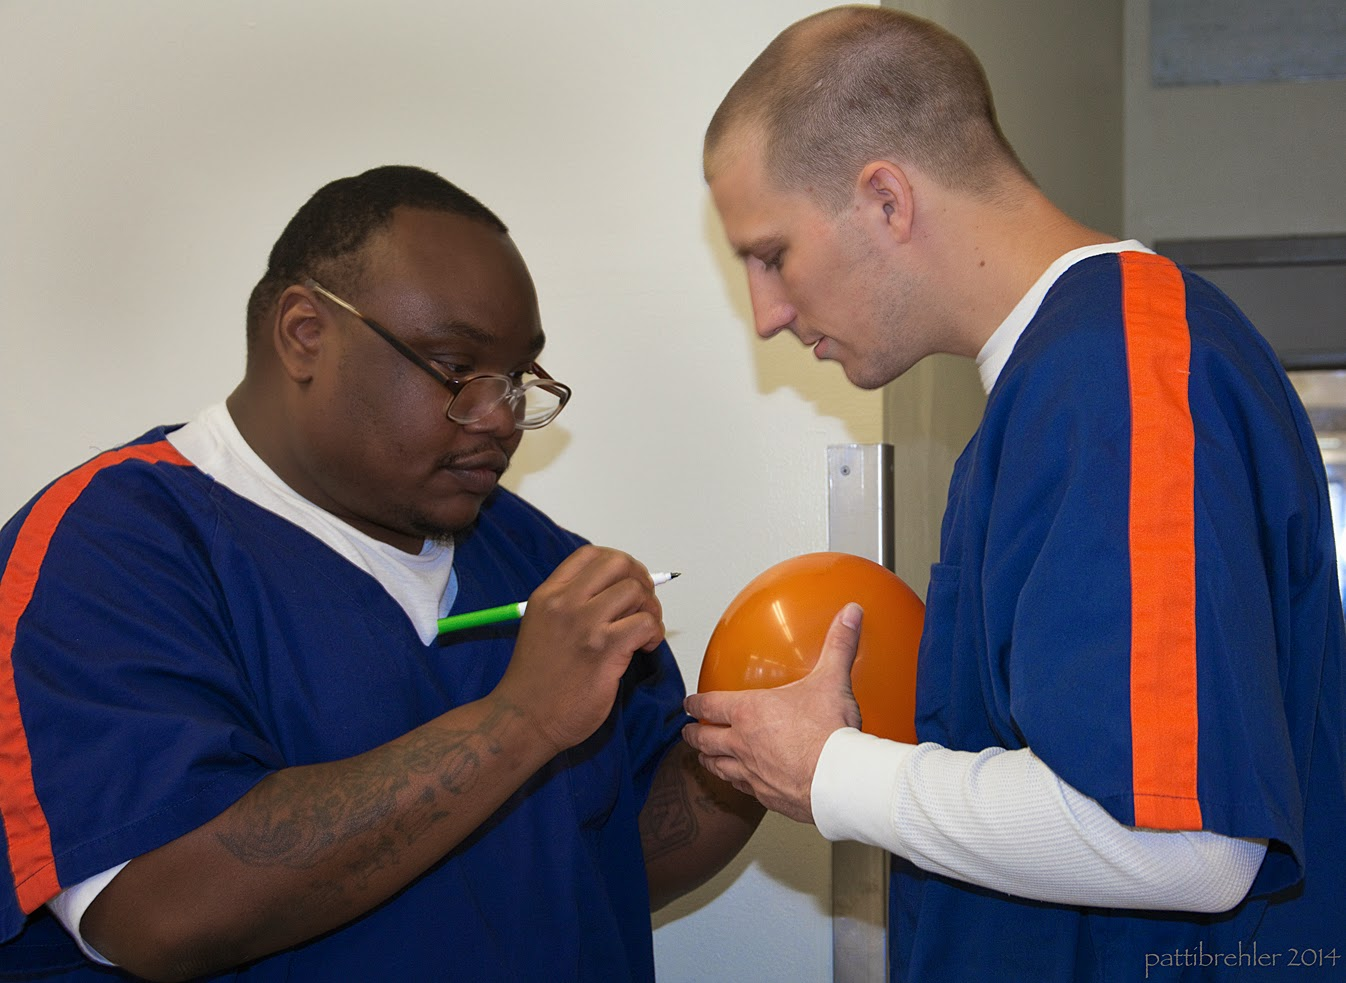 An african american man dressed in the blue prison uniform draws on an orange balloon with a green marker. He is on the left facing another man dressed in the prison uniform on the right. The man on the right is holding the orang e balloon.and looking down at it.